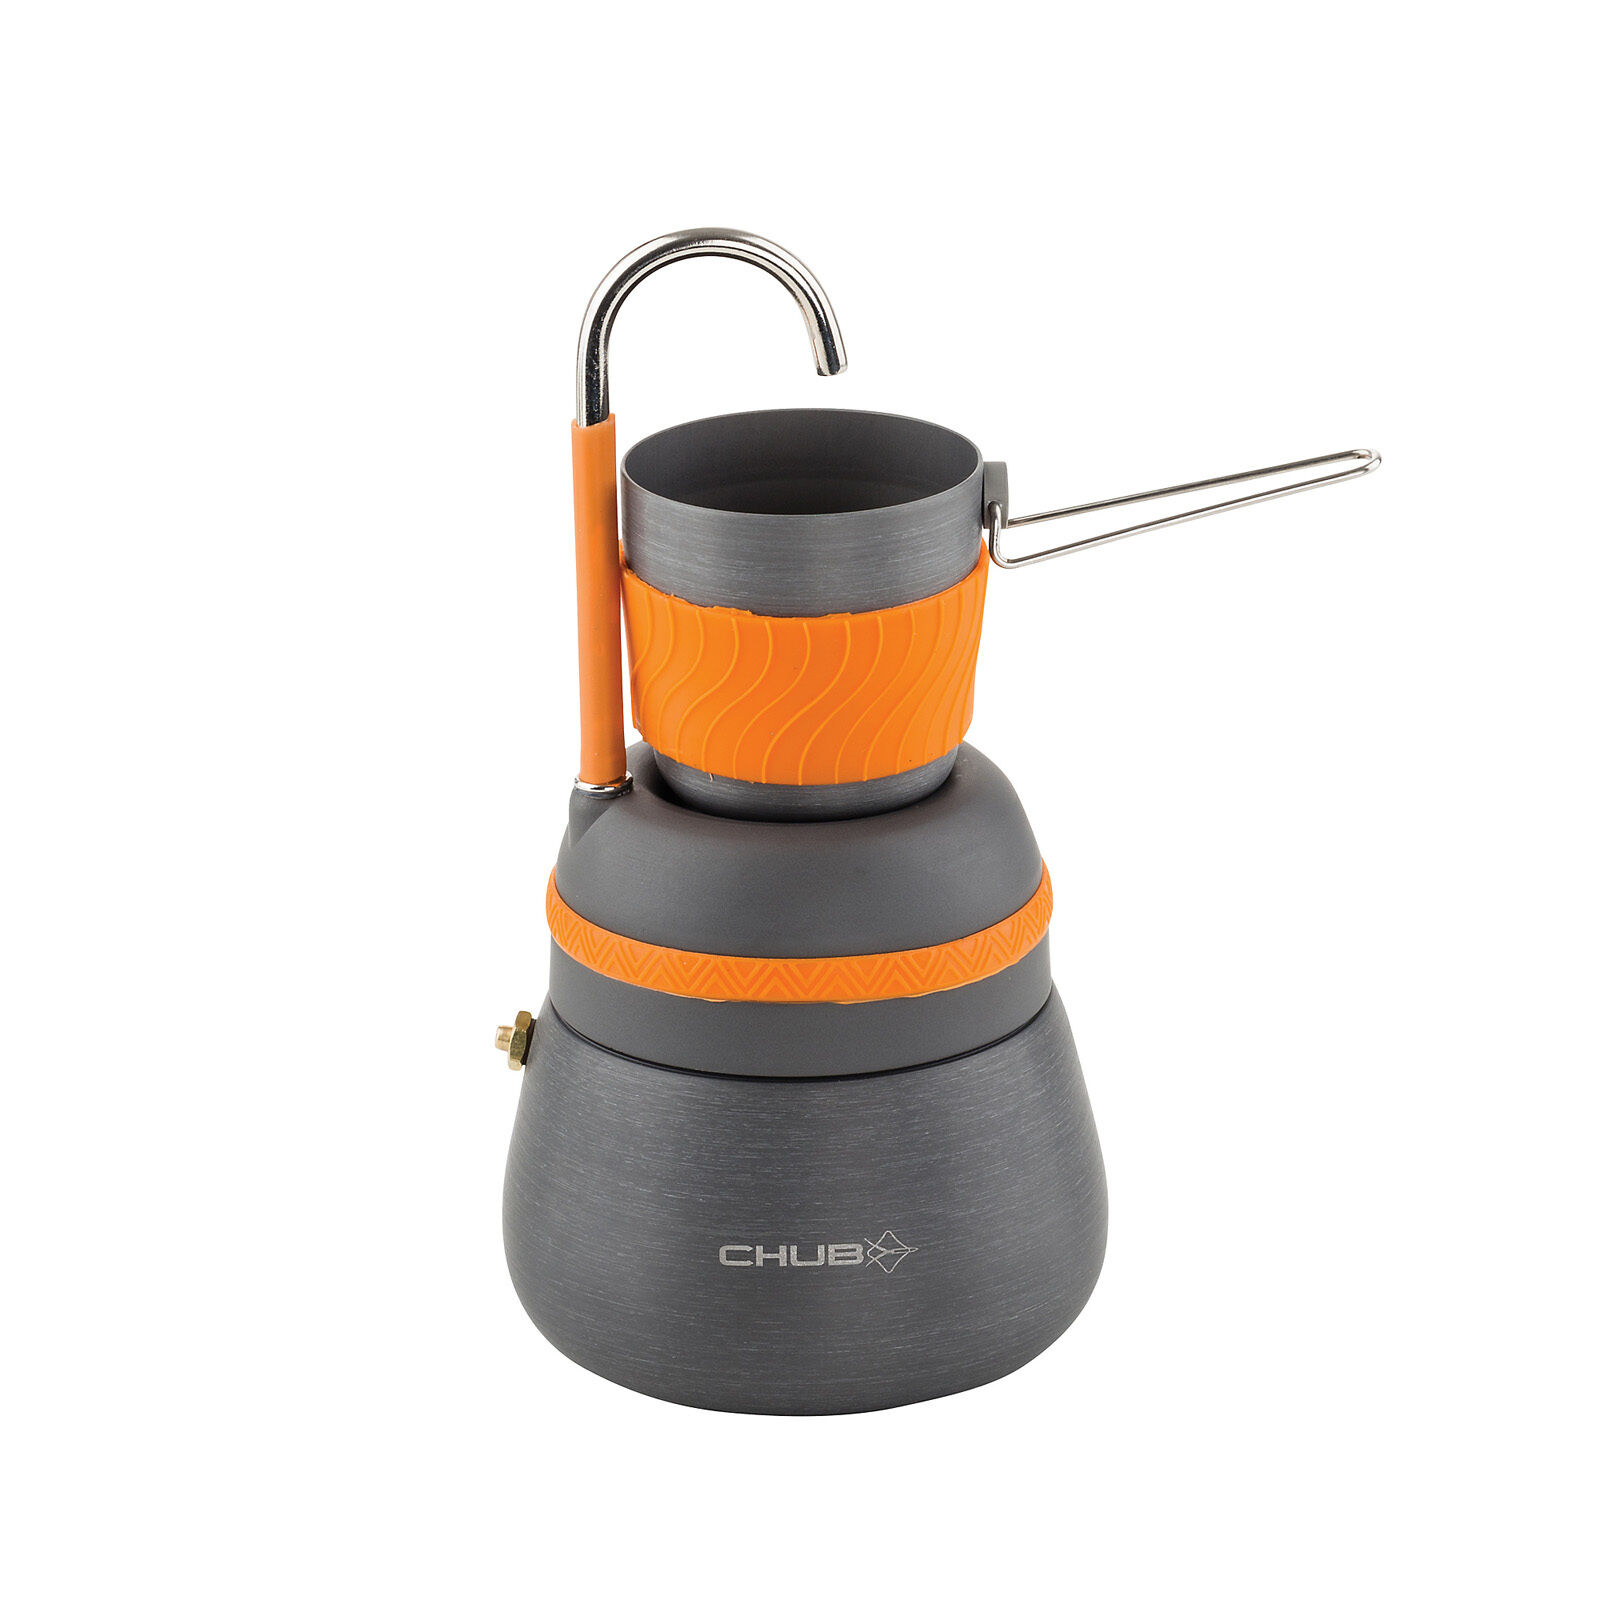 Chub Fishing Lightweight Coffee Maker- Easy Clean, Scratch & Corrosion Resistant